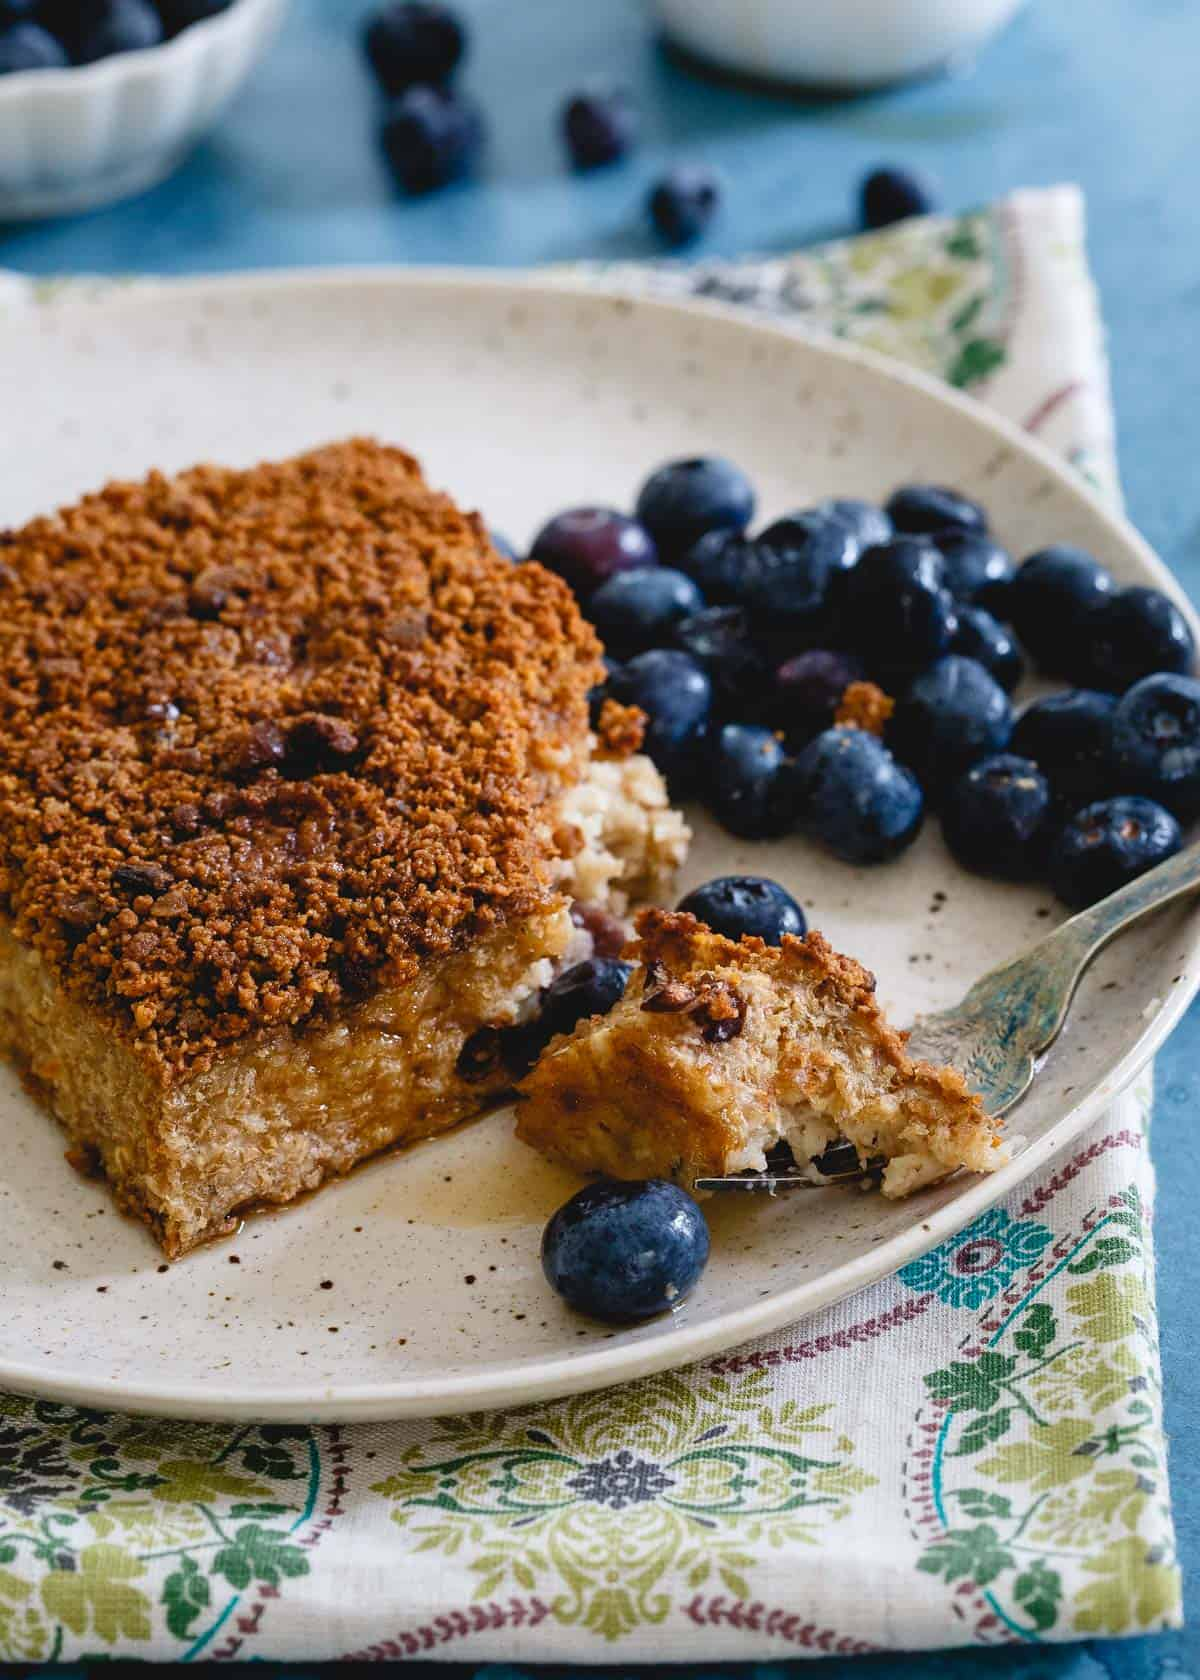 A warm and cozy plant based breakfast, this oatmeal breakfast pie is a morning favorite!